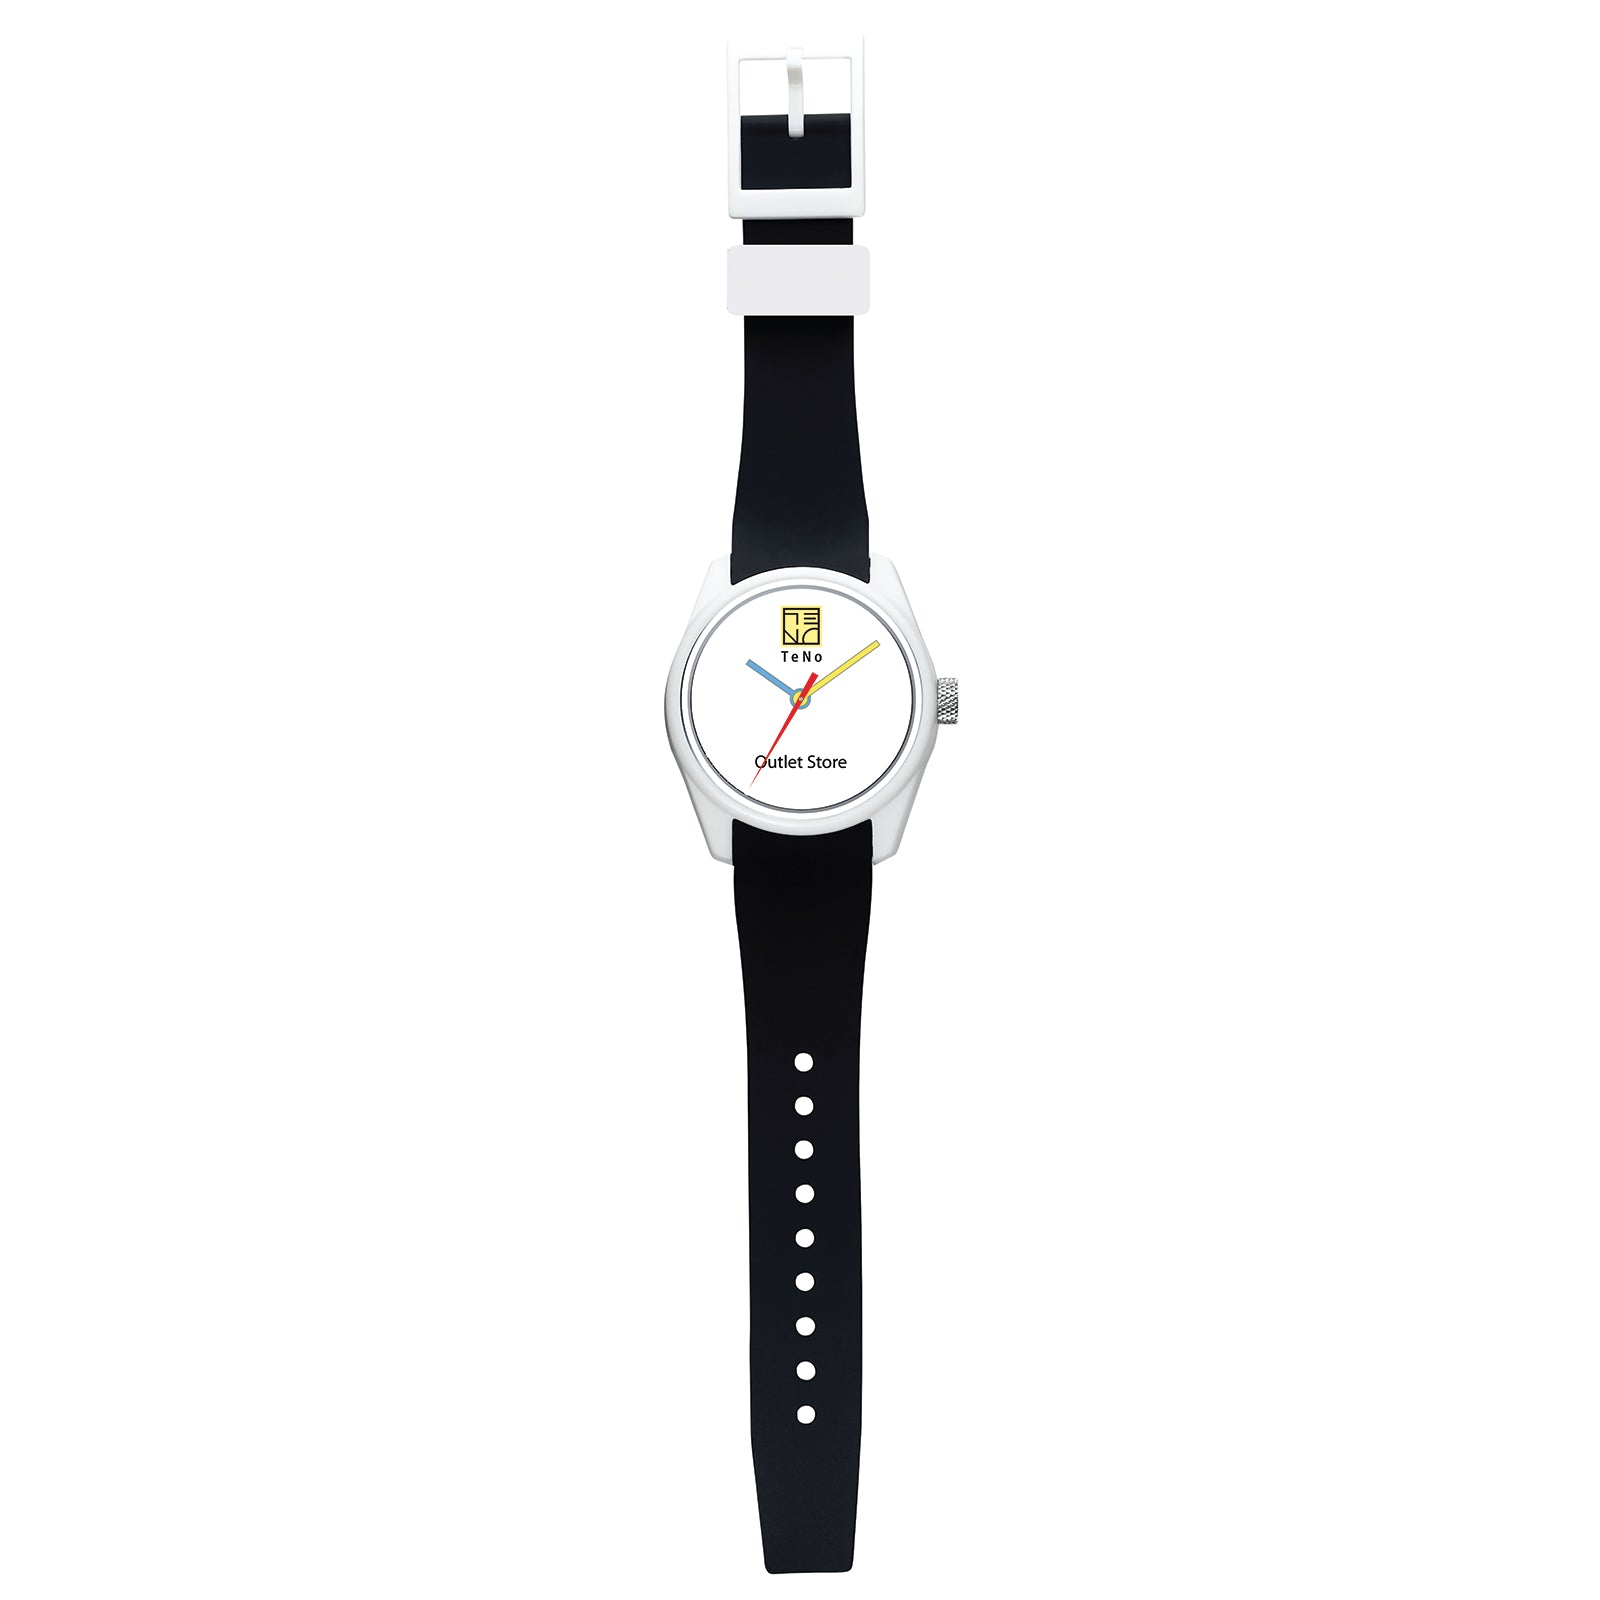 TeNo Outlet Watch